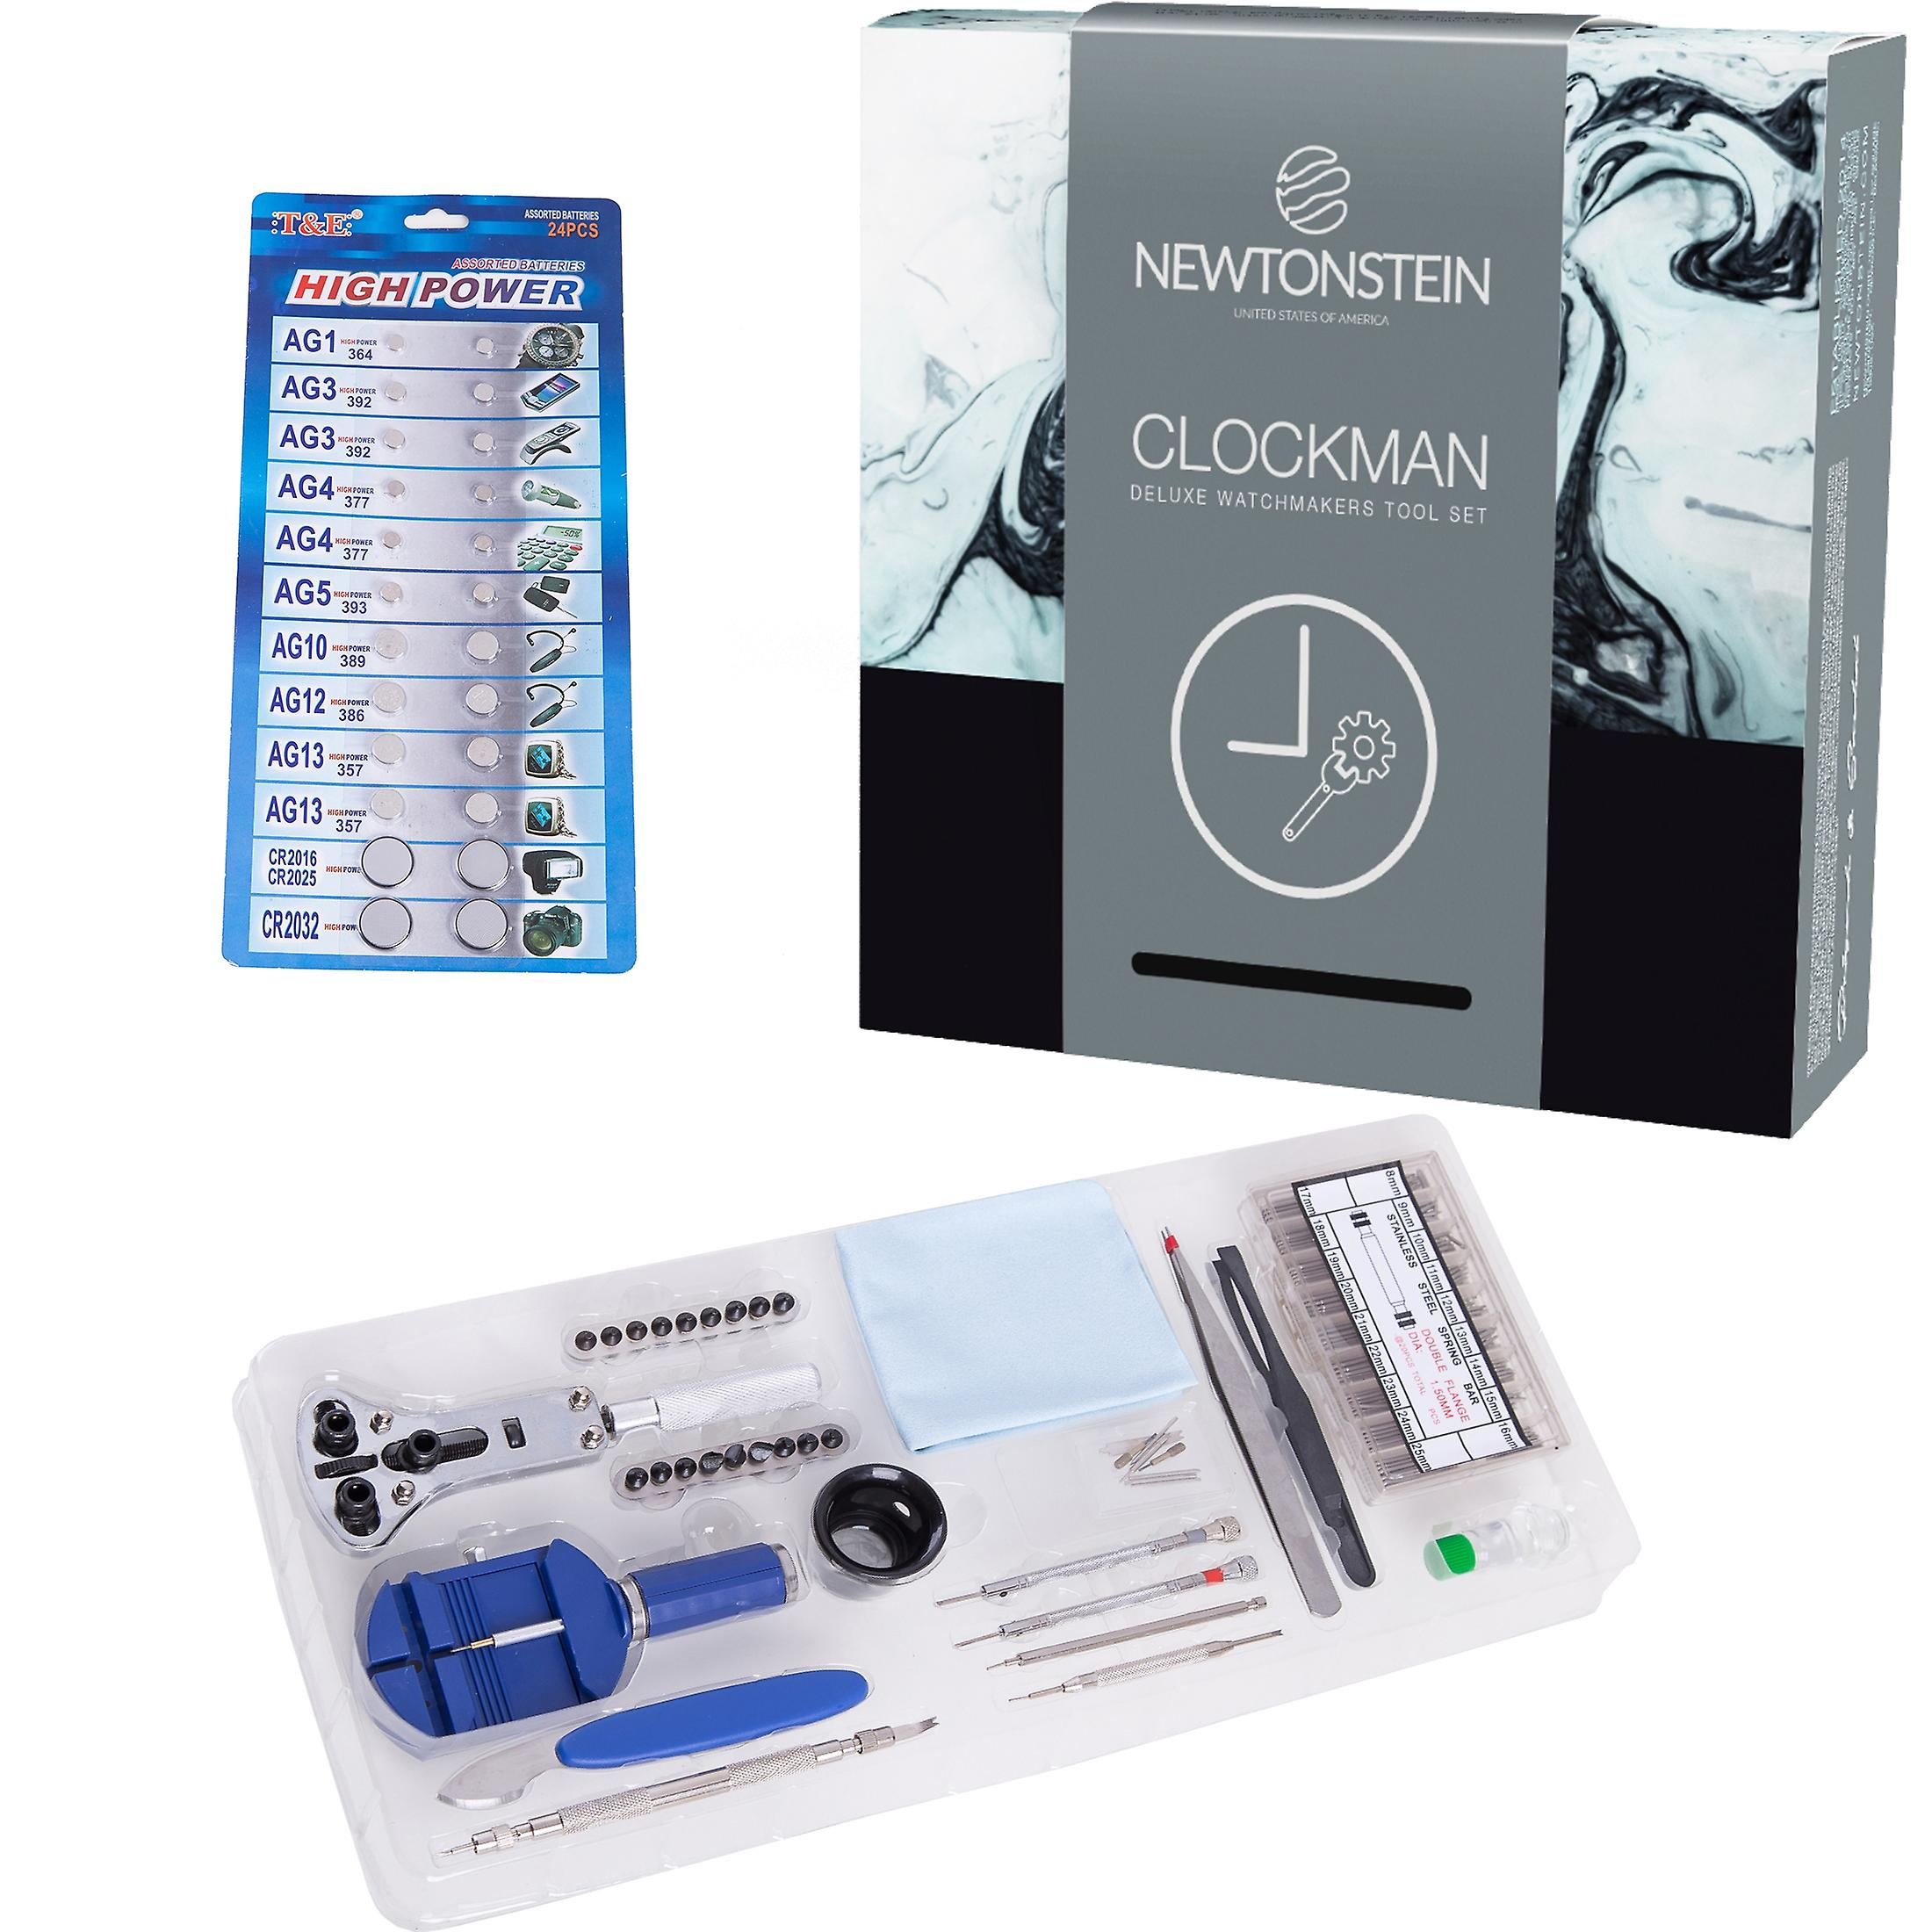 Clockman - A 420 Pieced Deluxe Watchmakers Tool Set Featuring Housing and Case Opener/Pry Tools and Pin Punches Steel Tweezers Link Bracelet Adjuster 360 Pieces of Various Steel Spring Bars and Tools Magnifying Glass Mini Rubber Hammer Precision Pliers Watch Case Holder Watch Band Remover 24 Pieces of Assorted Replacement Batteries Anti-grease + Anti-static Cloth Clock Oil + In Trays and Boxed